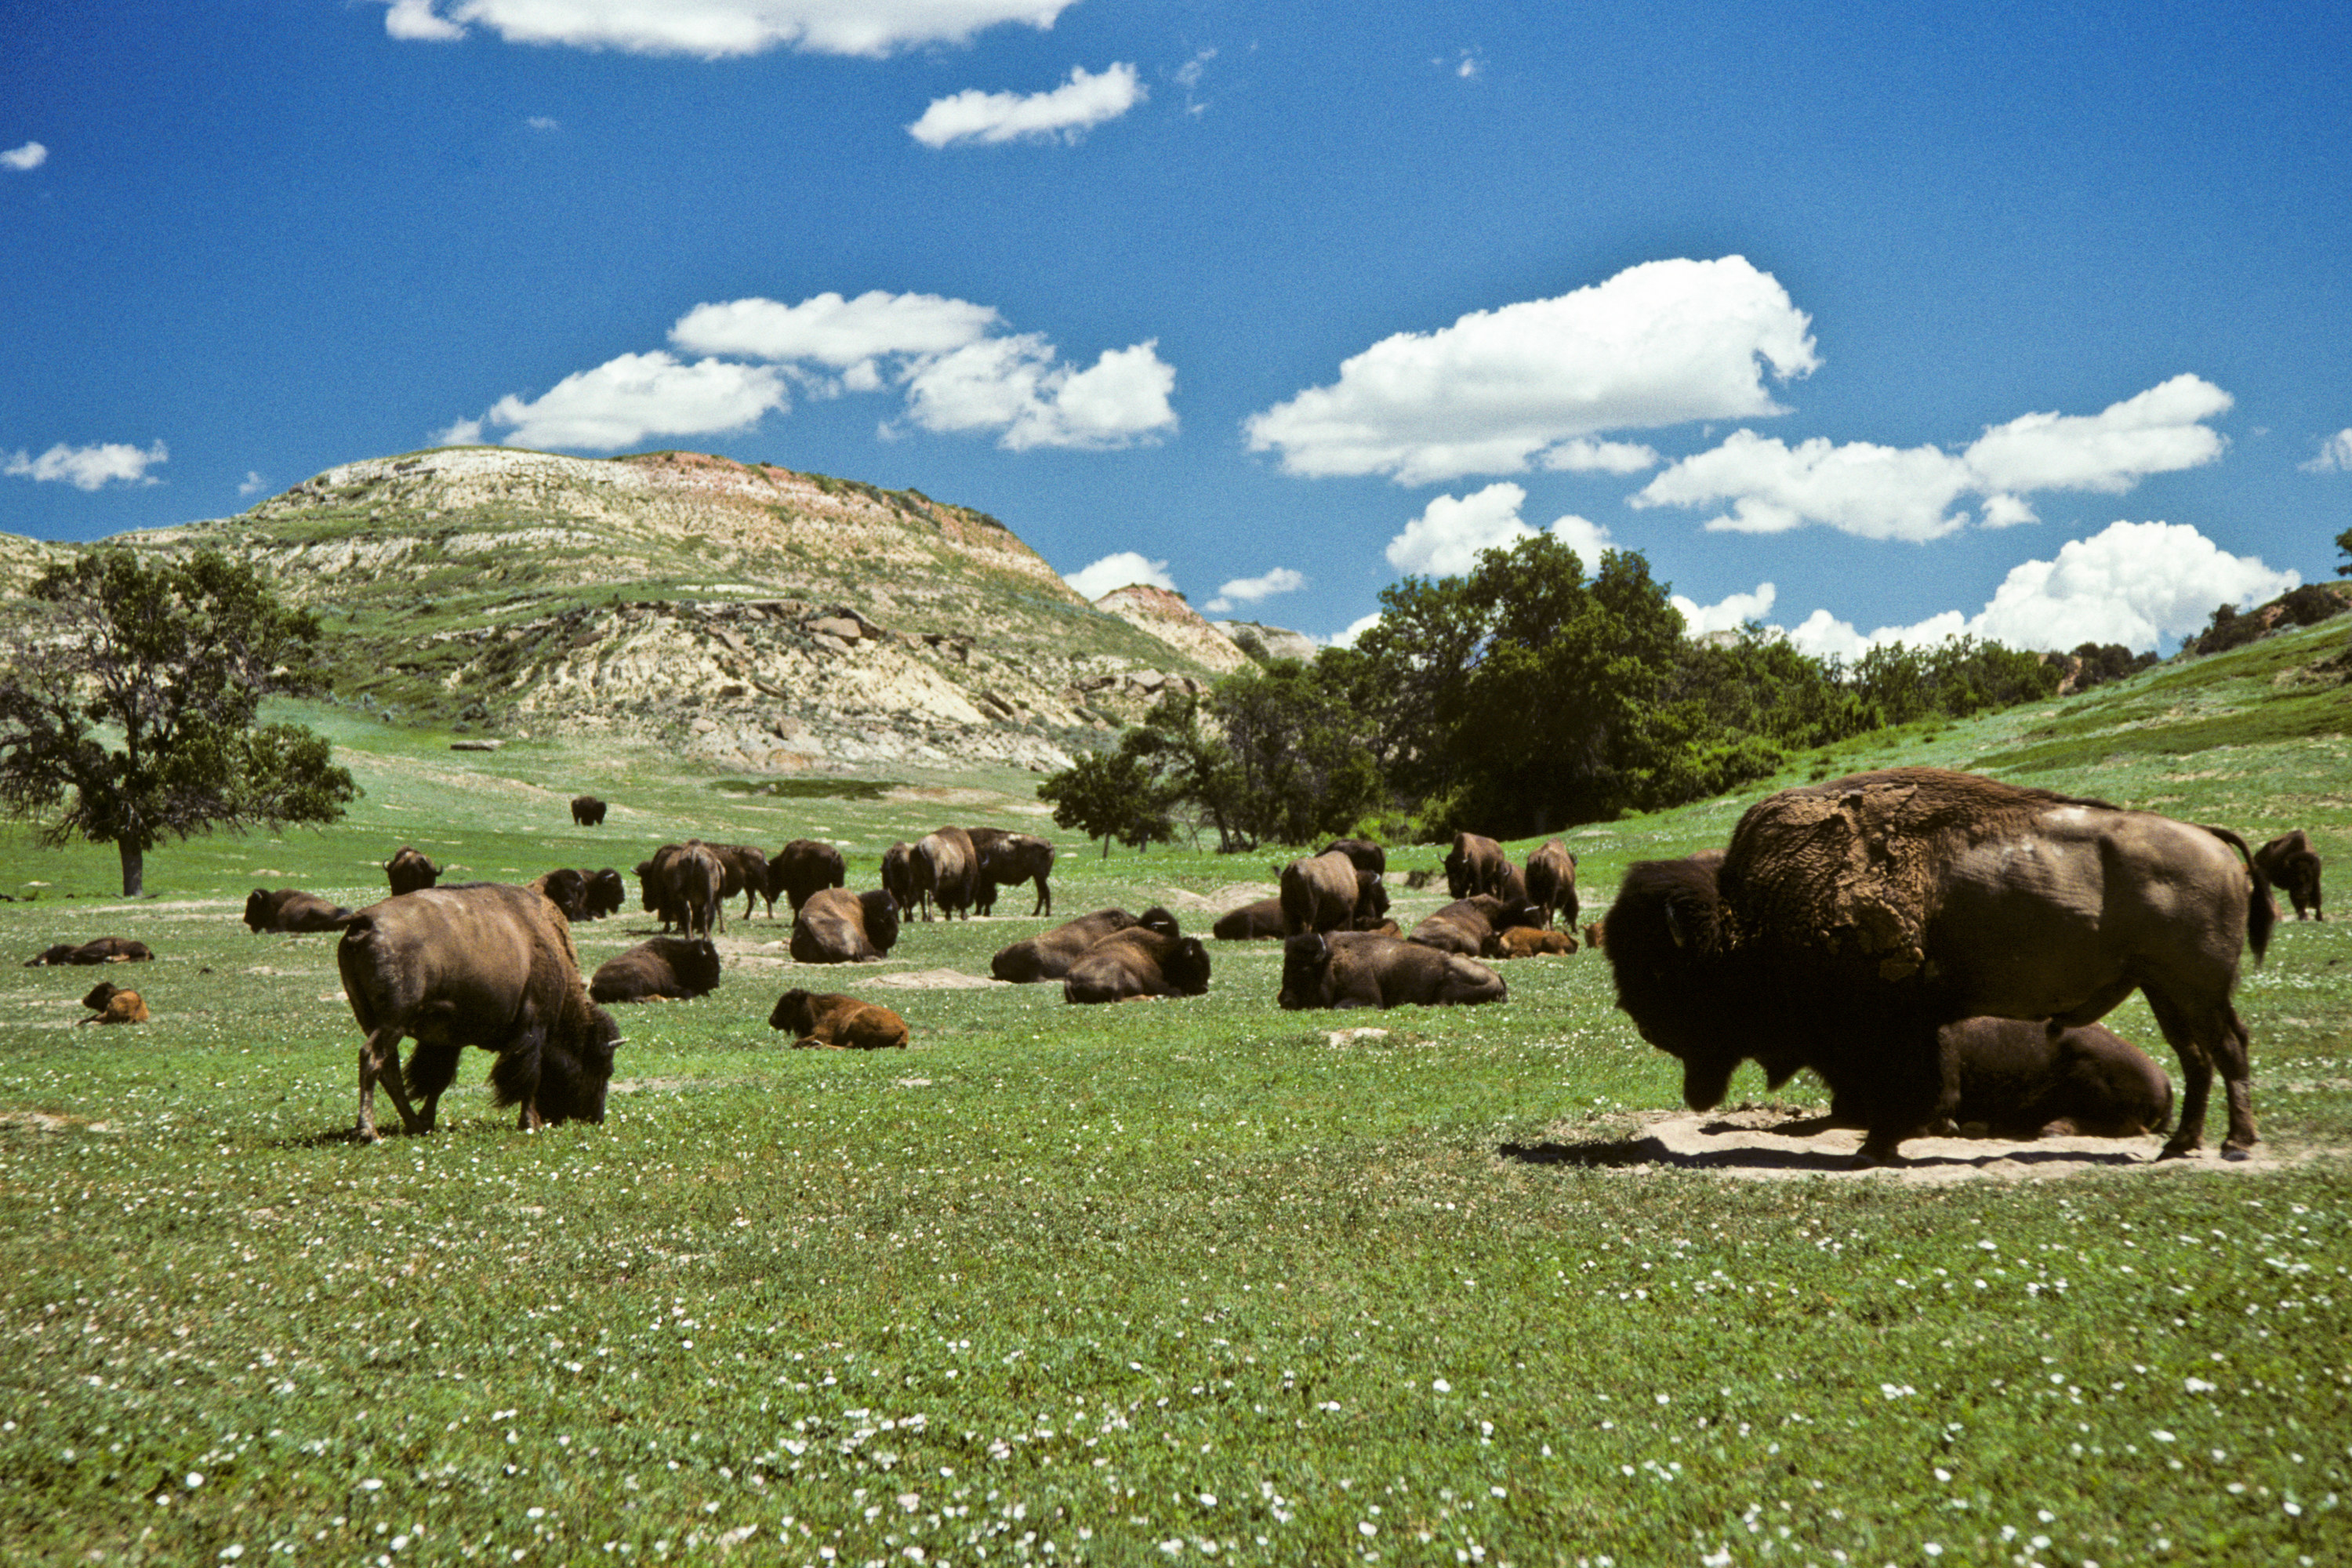 Various bison graze on a flat grassy area. Perfectly spaced white clouds dot a clear afternoon sky.